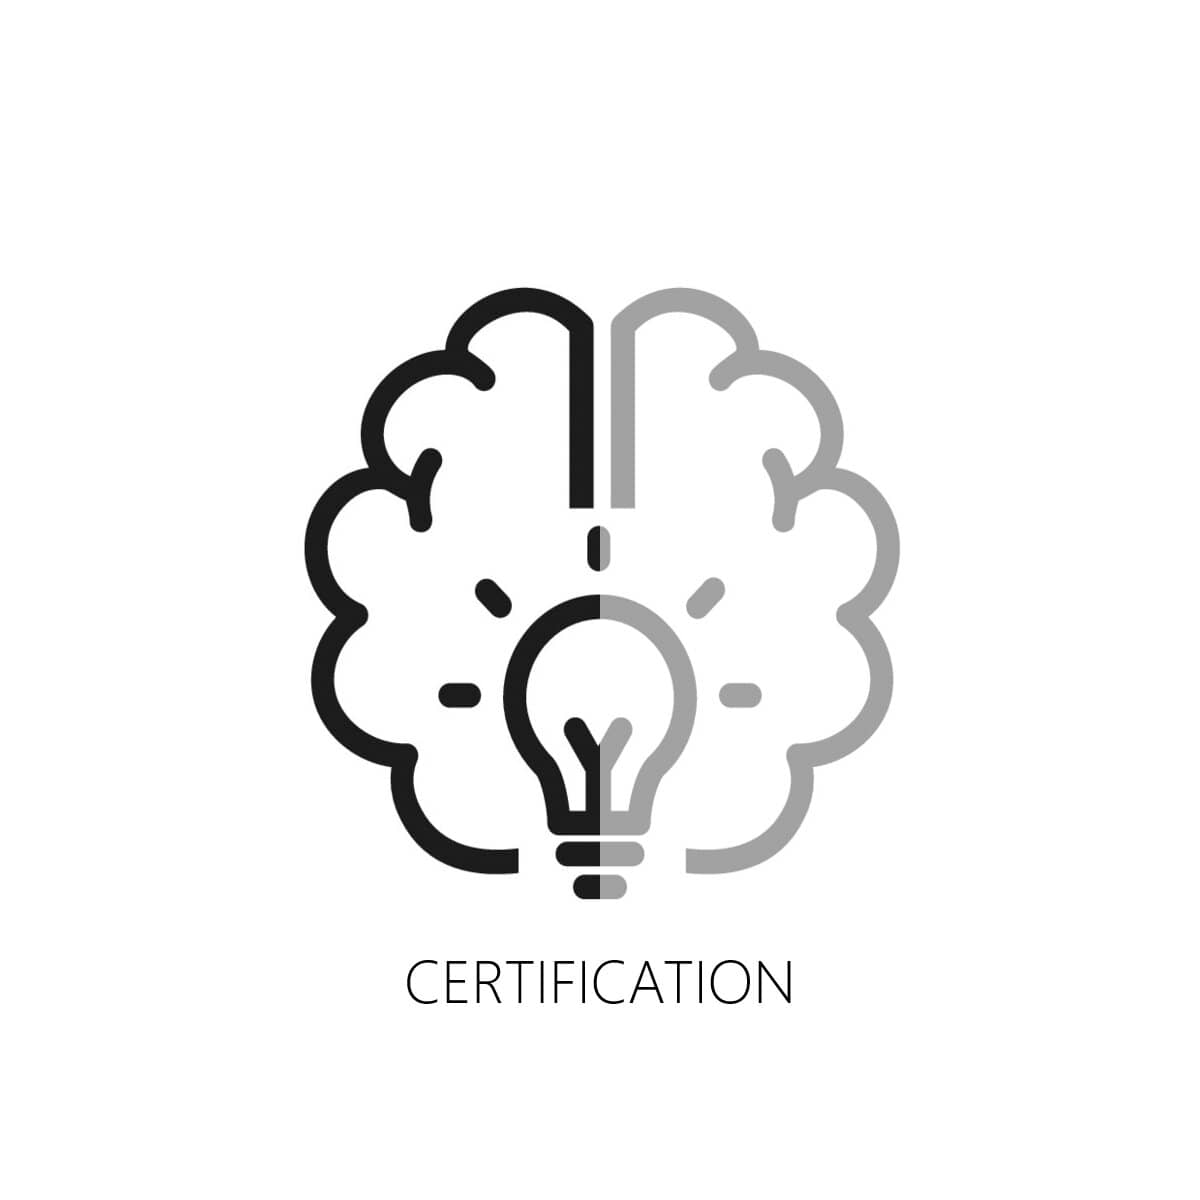 A brain symbolizes the knowledge and certification provided by Alumil Academy to fabricators